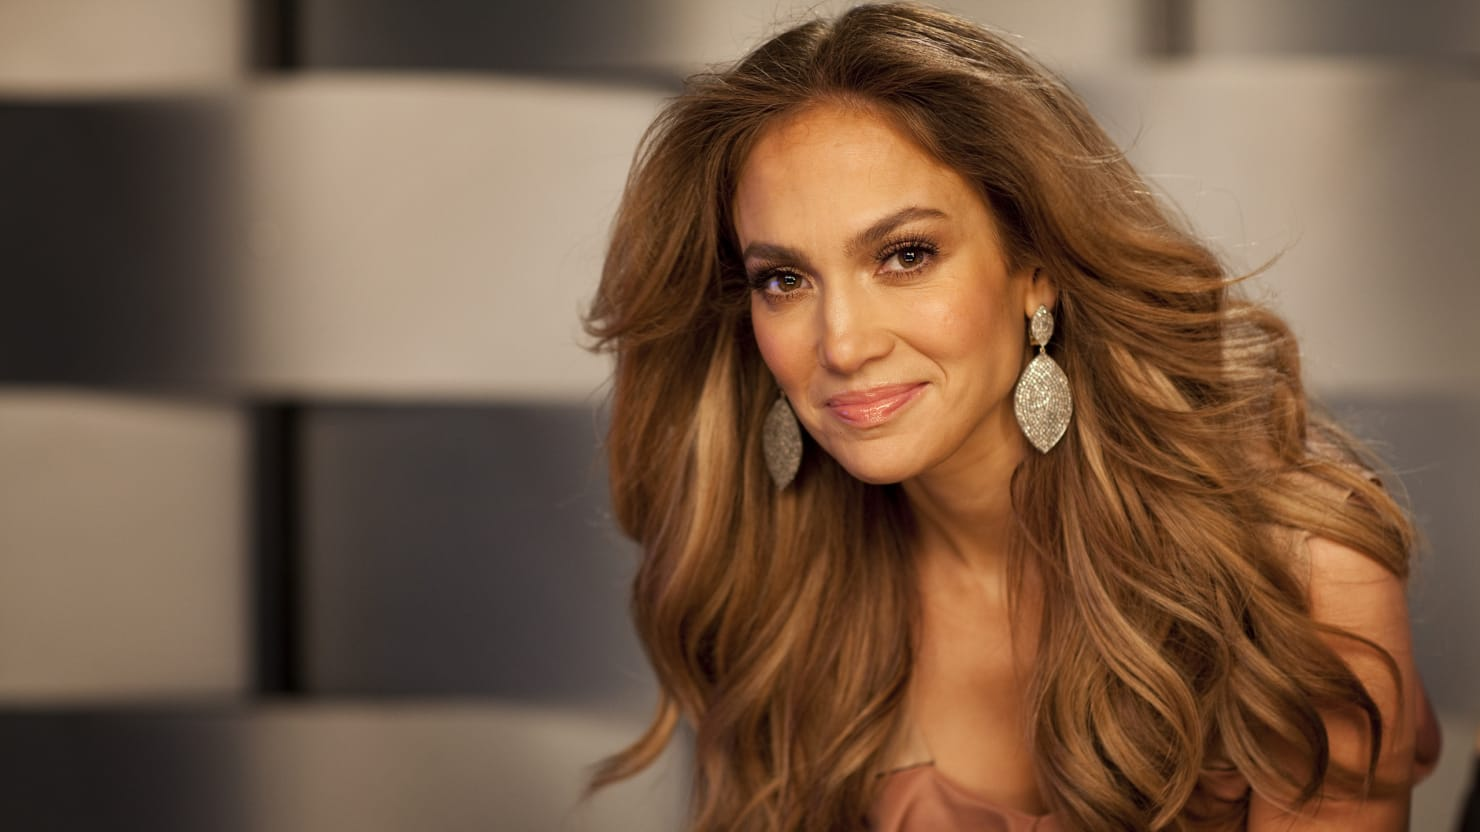 The Terrible 'Boy Next Door' Will Save Jennifer Lopez's Career